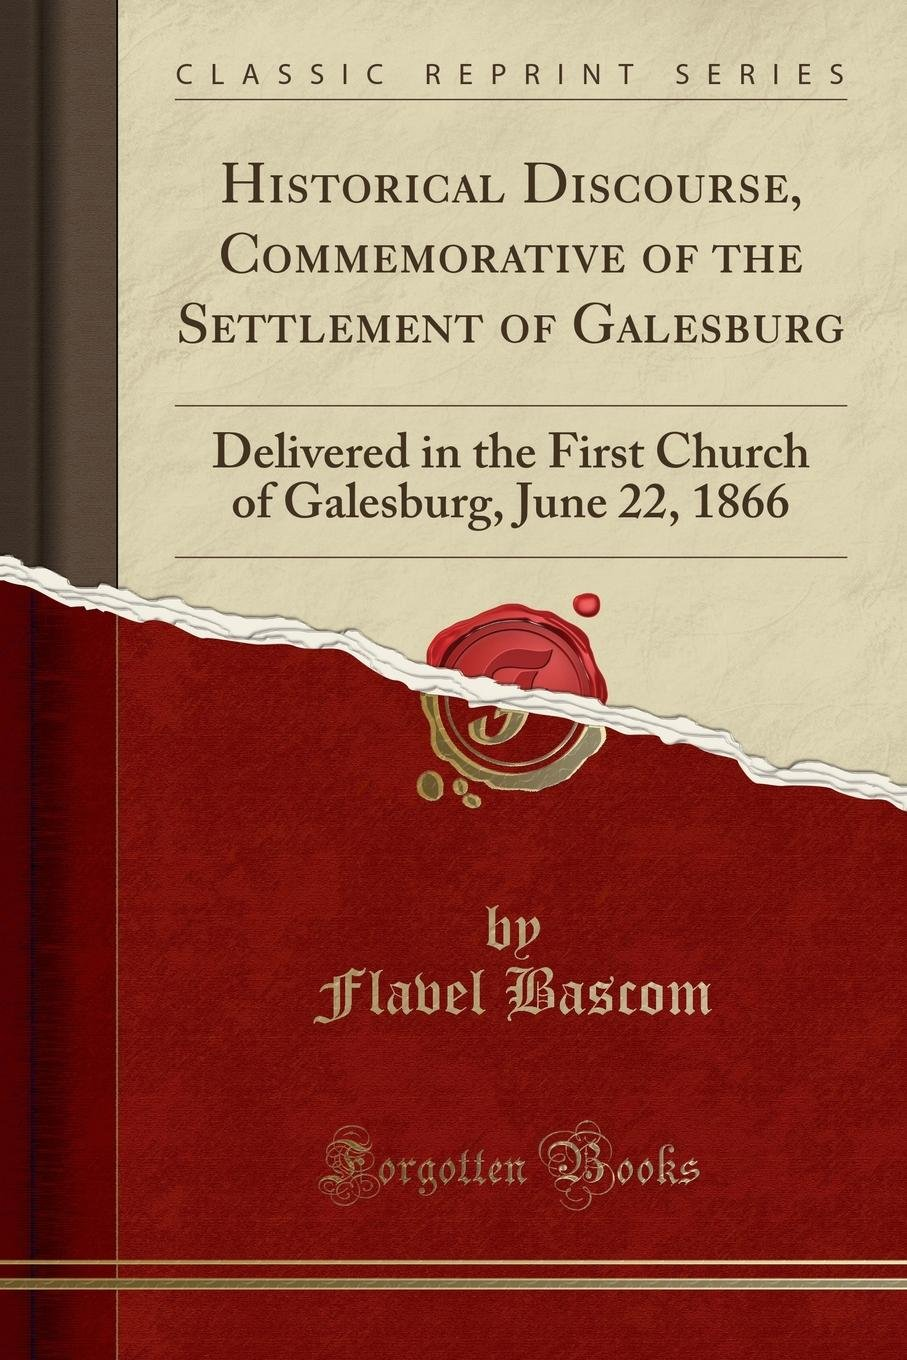 Historical Discourse, Commemorative of the Settlement of Galesburg: Delivered in the First Church of Galesburg, June 22, 1866 (Classic Reprint) PDF